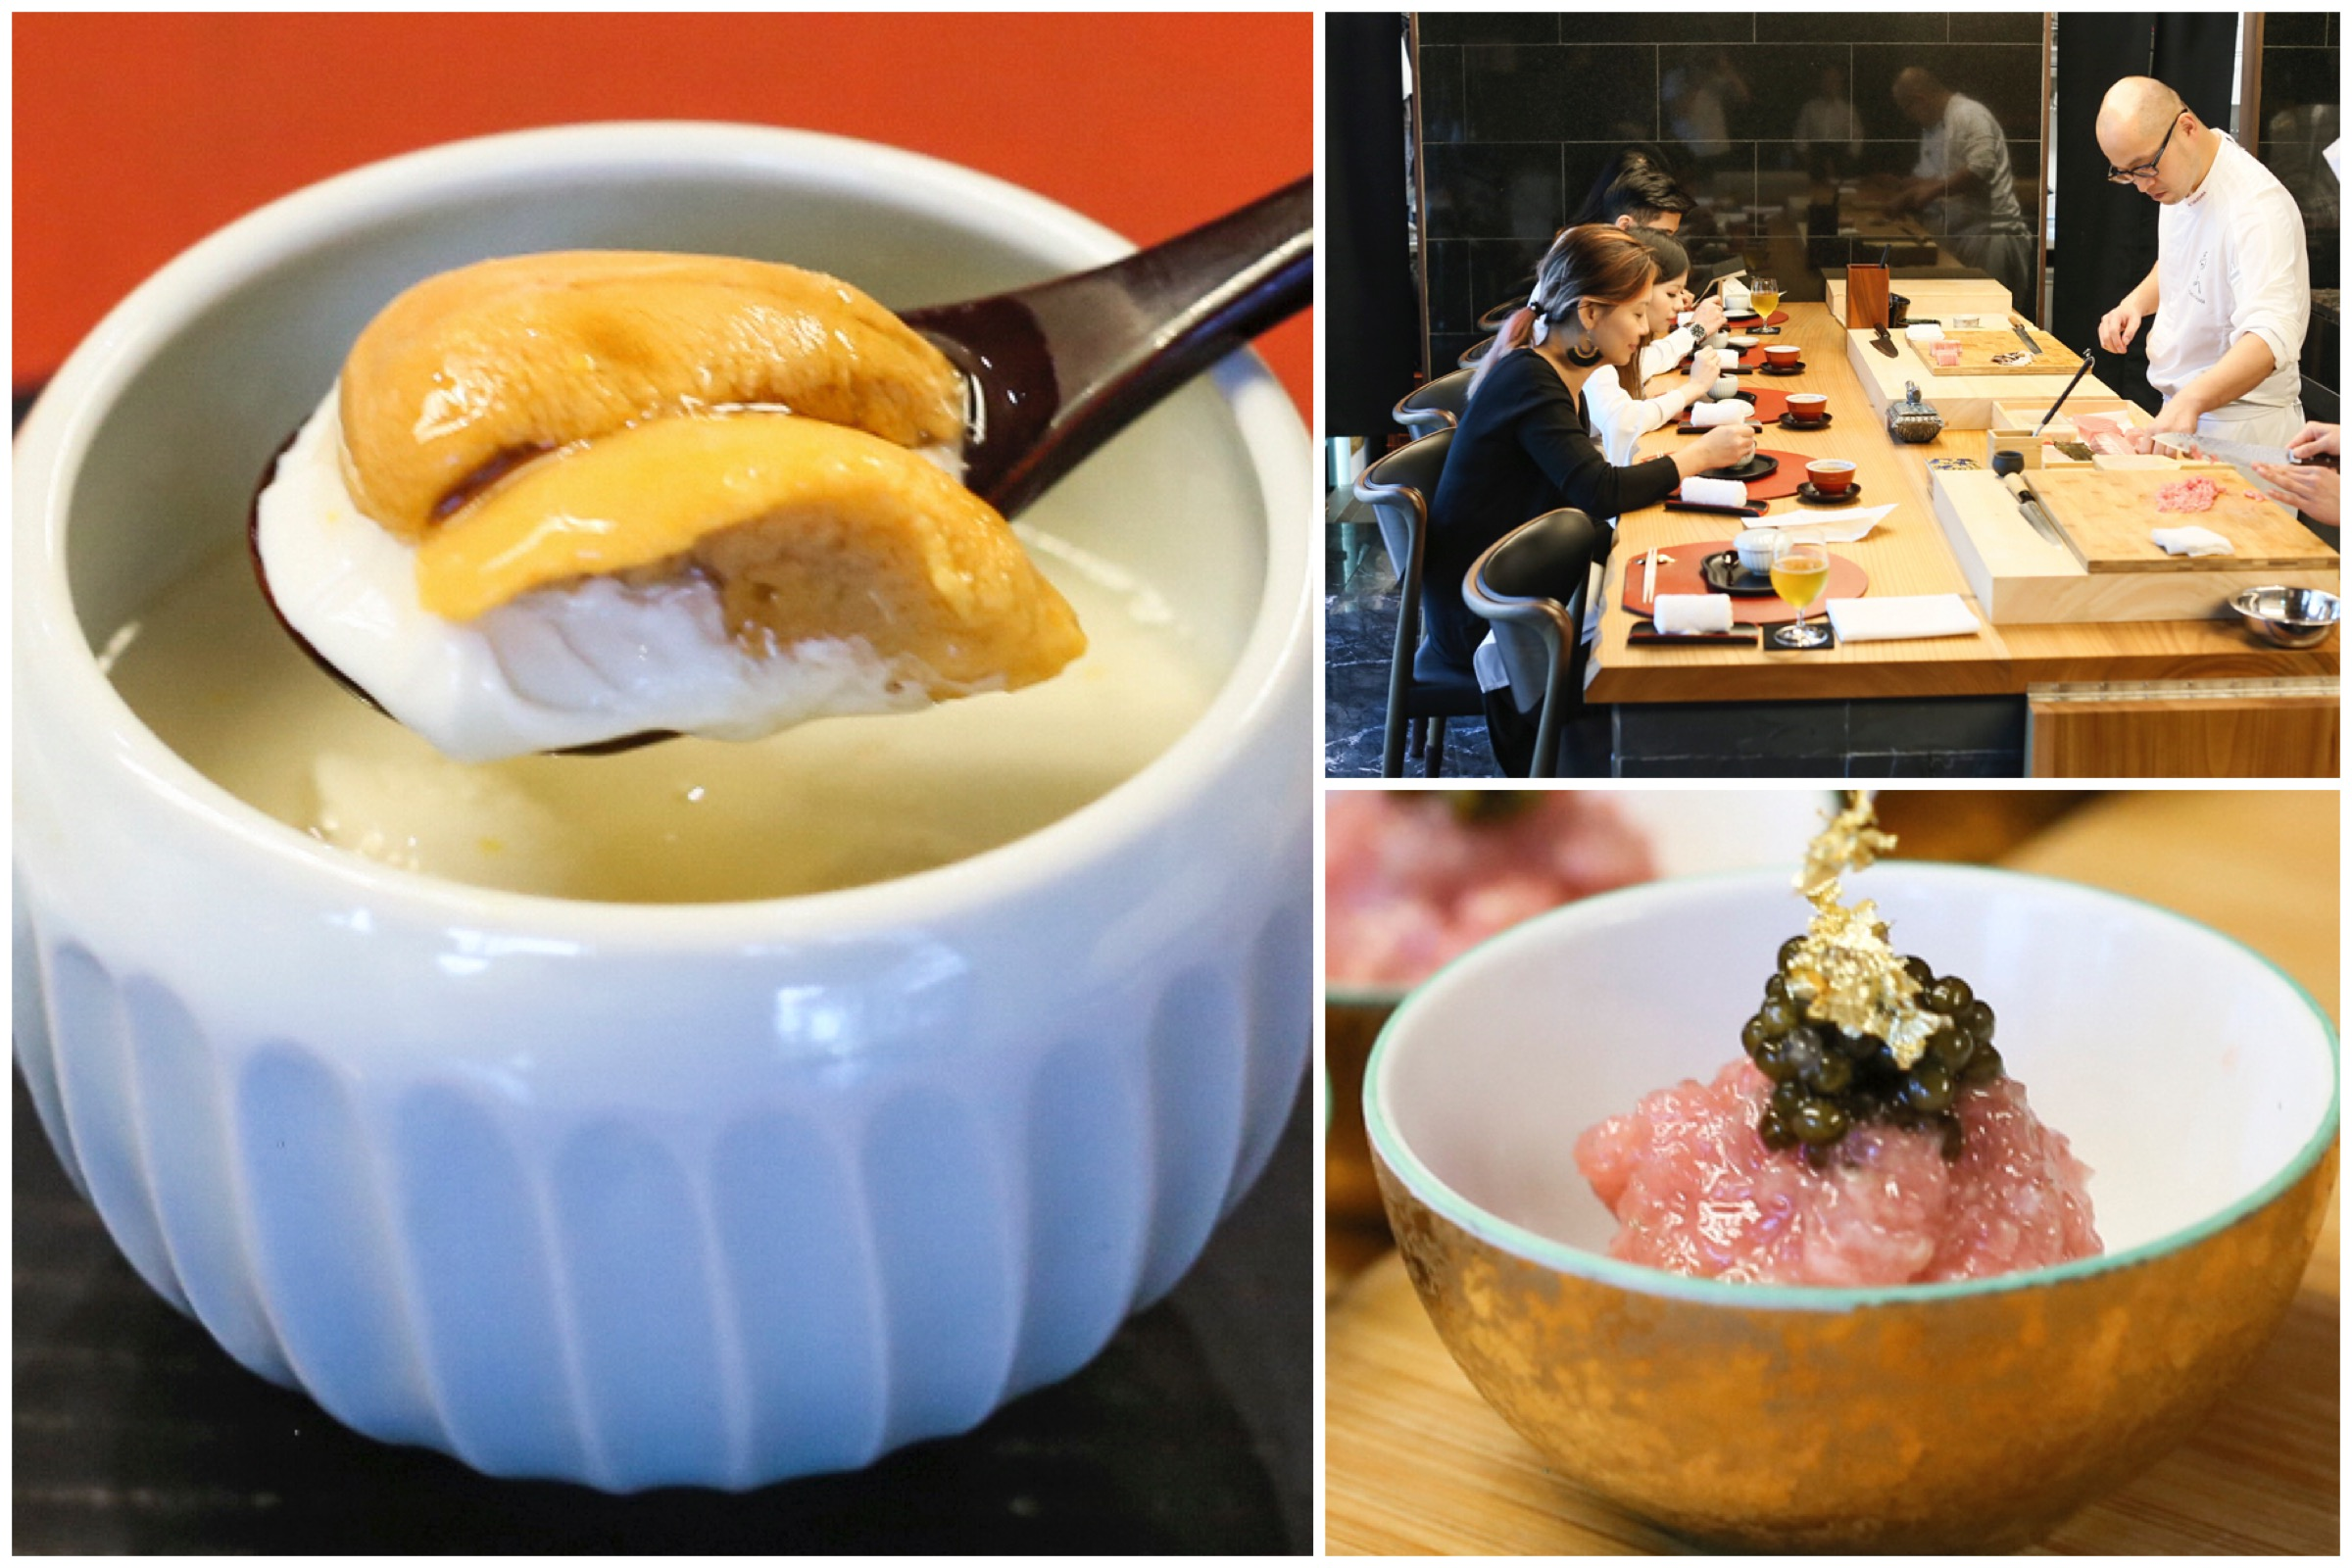 Takayama – Japanese Kappo-style Restaurant At Downtown Gallery, With Seasonal Set Lunches And Omakase